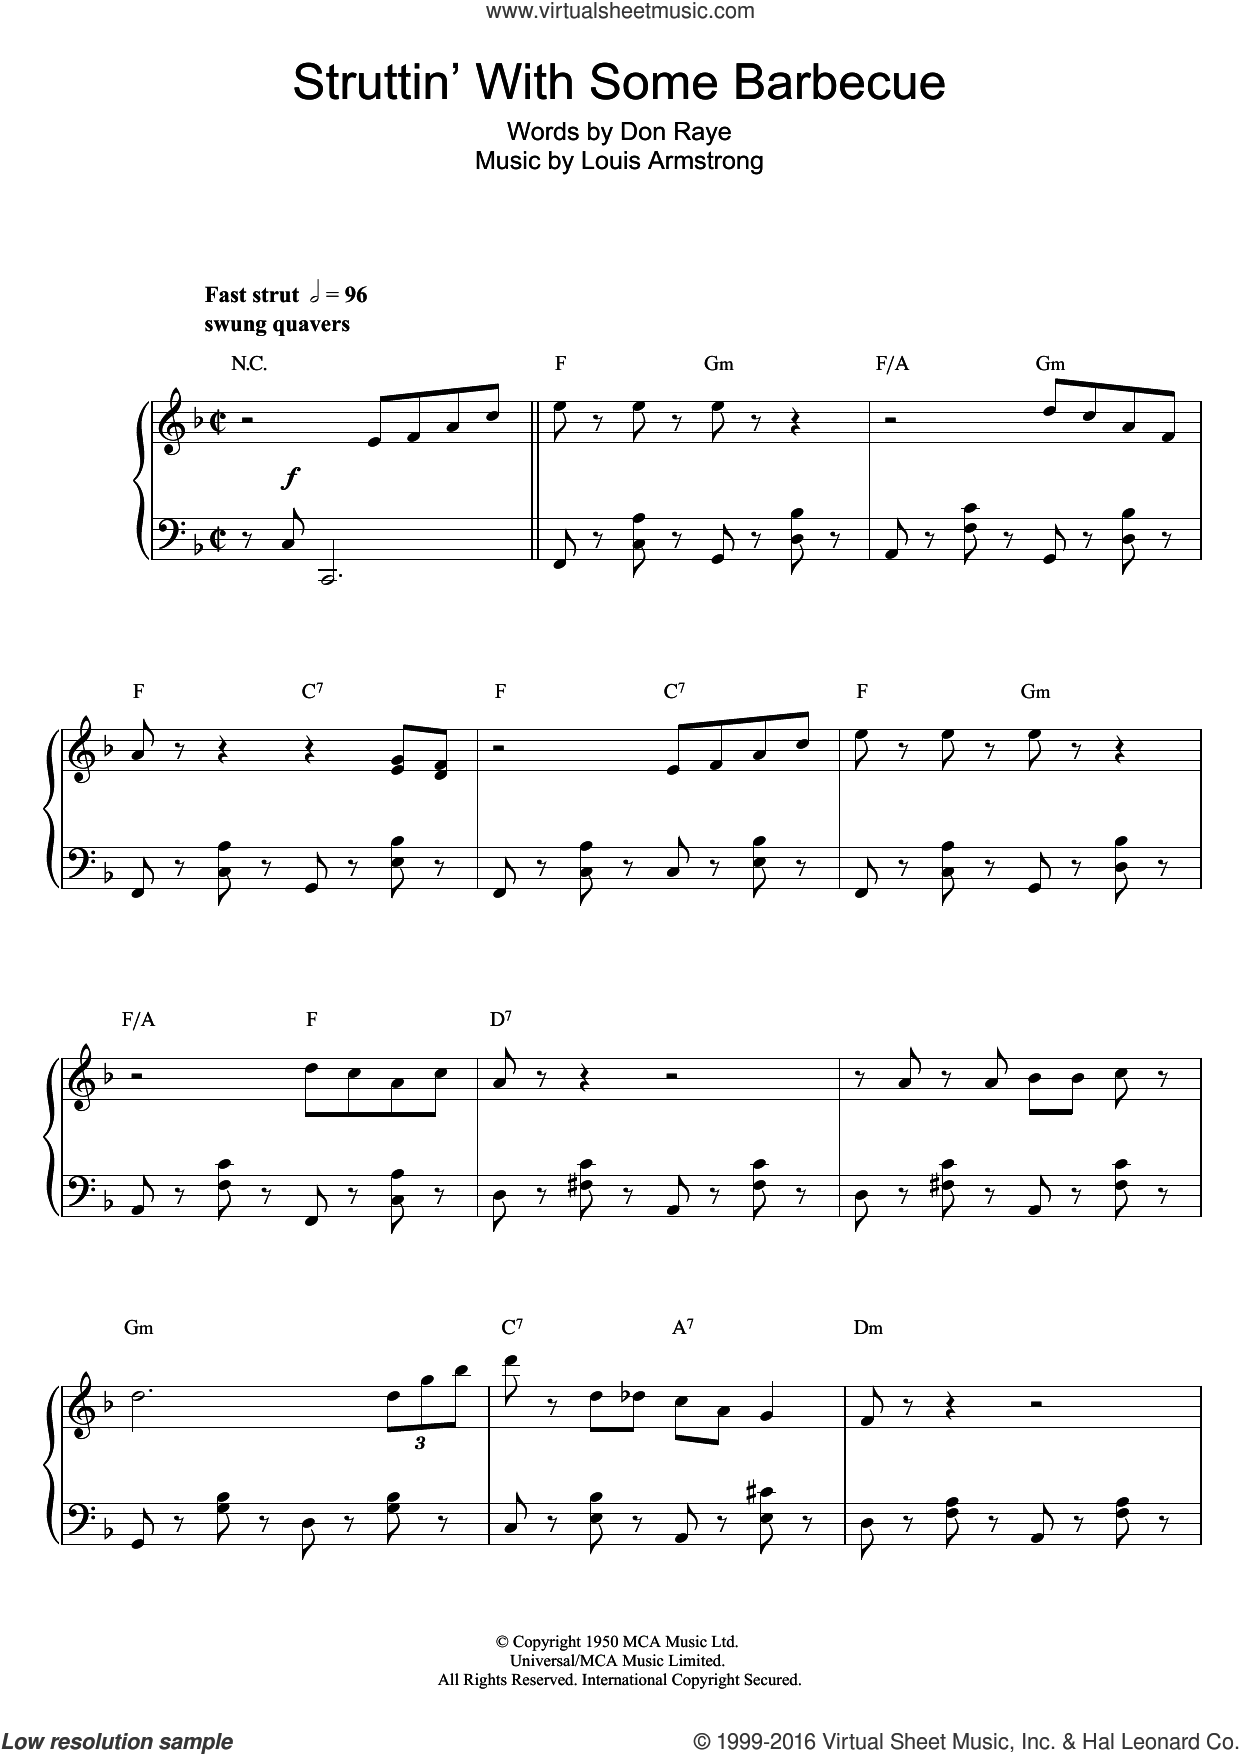 Struttin' With Some Barbecue sheet music for piano solo by Don Raye and Louis Armstrong. Score Image Preview.